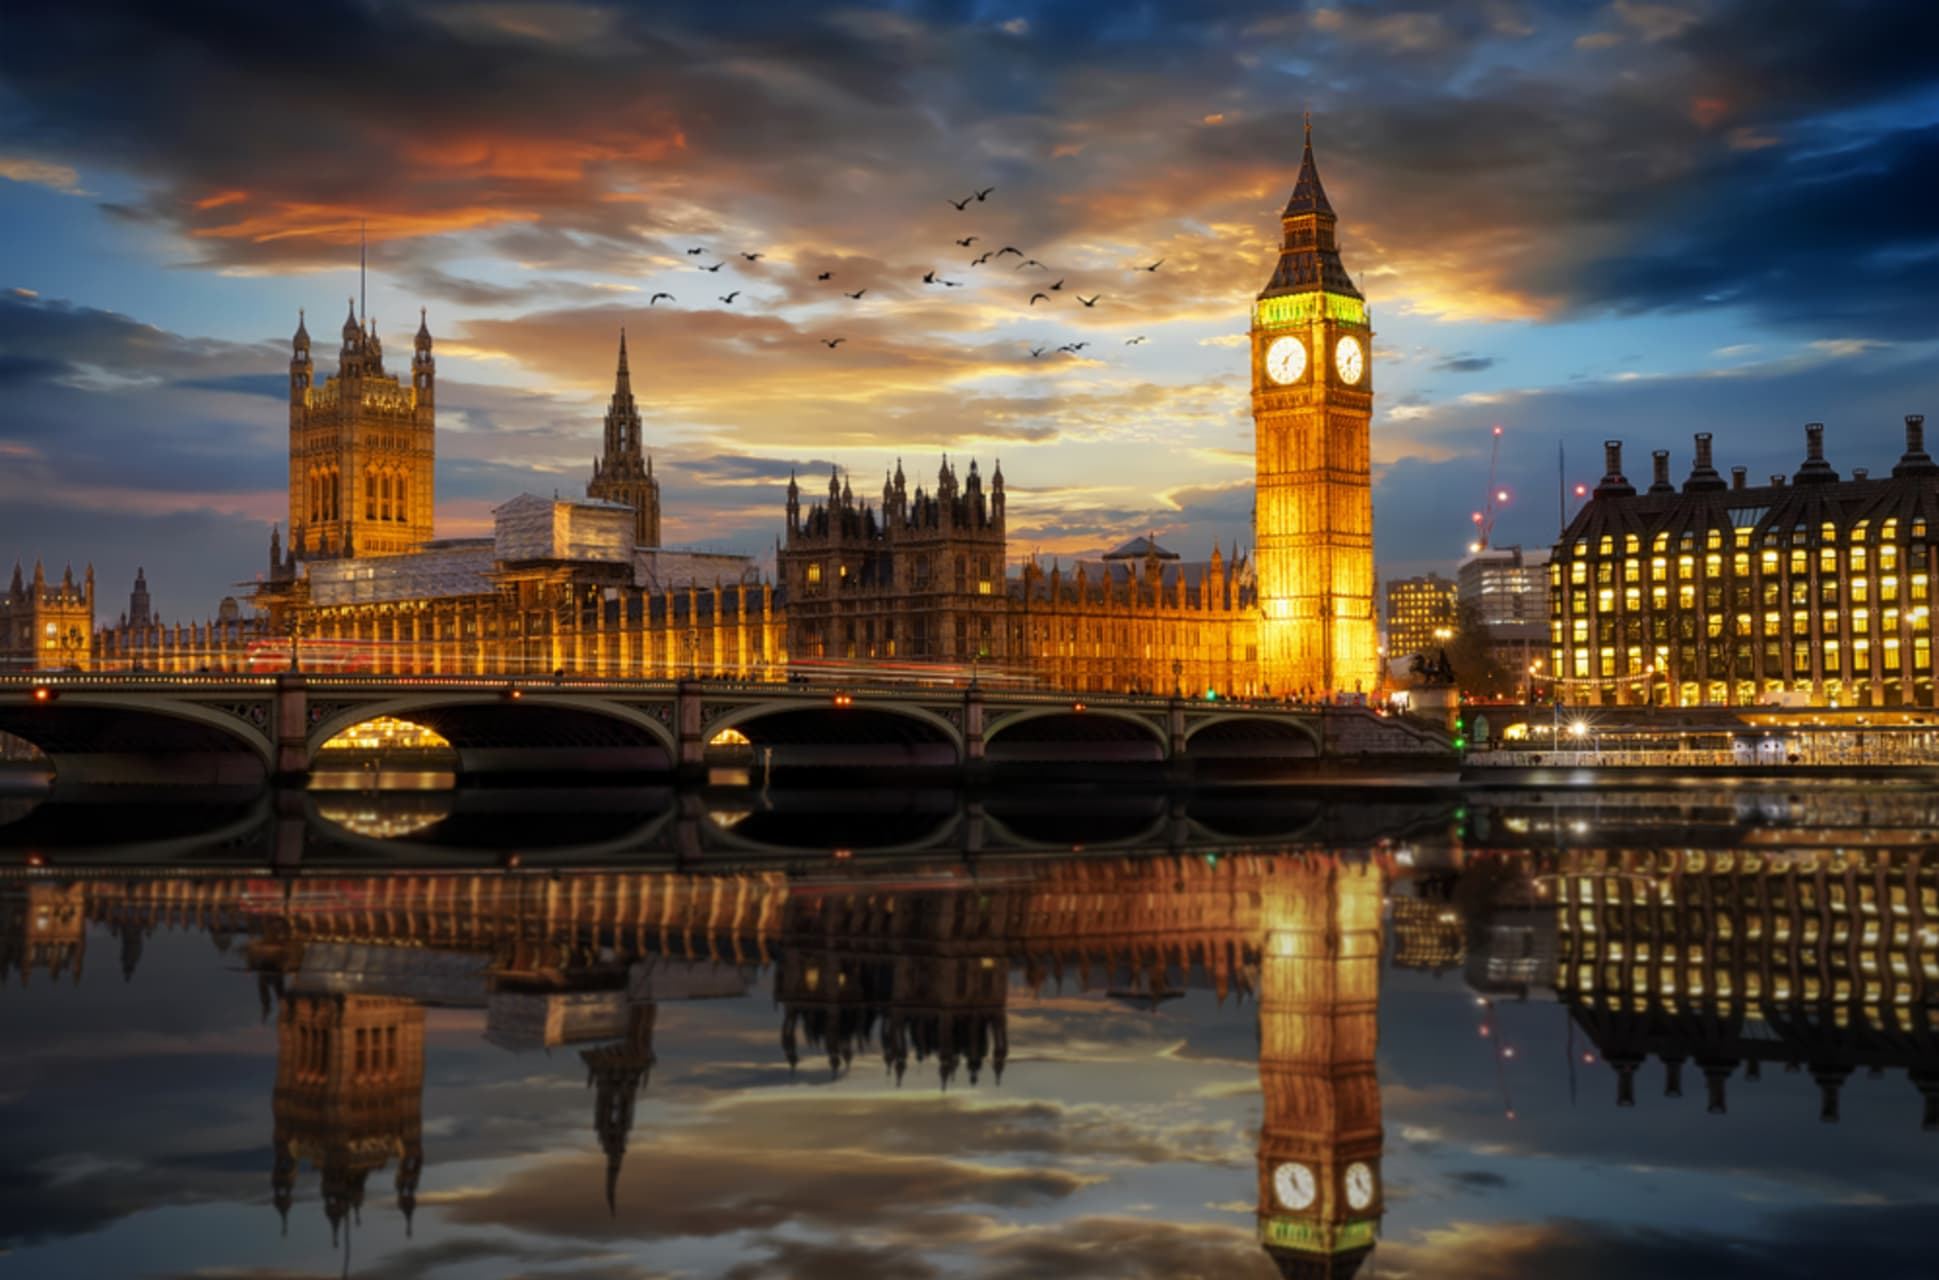 London - Special Highlights of Westminster tour celebrating the life of HRH Prince Phillip